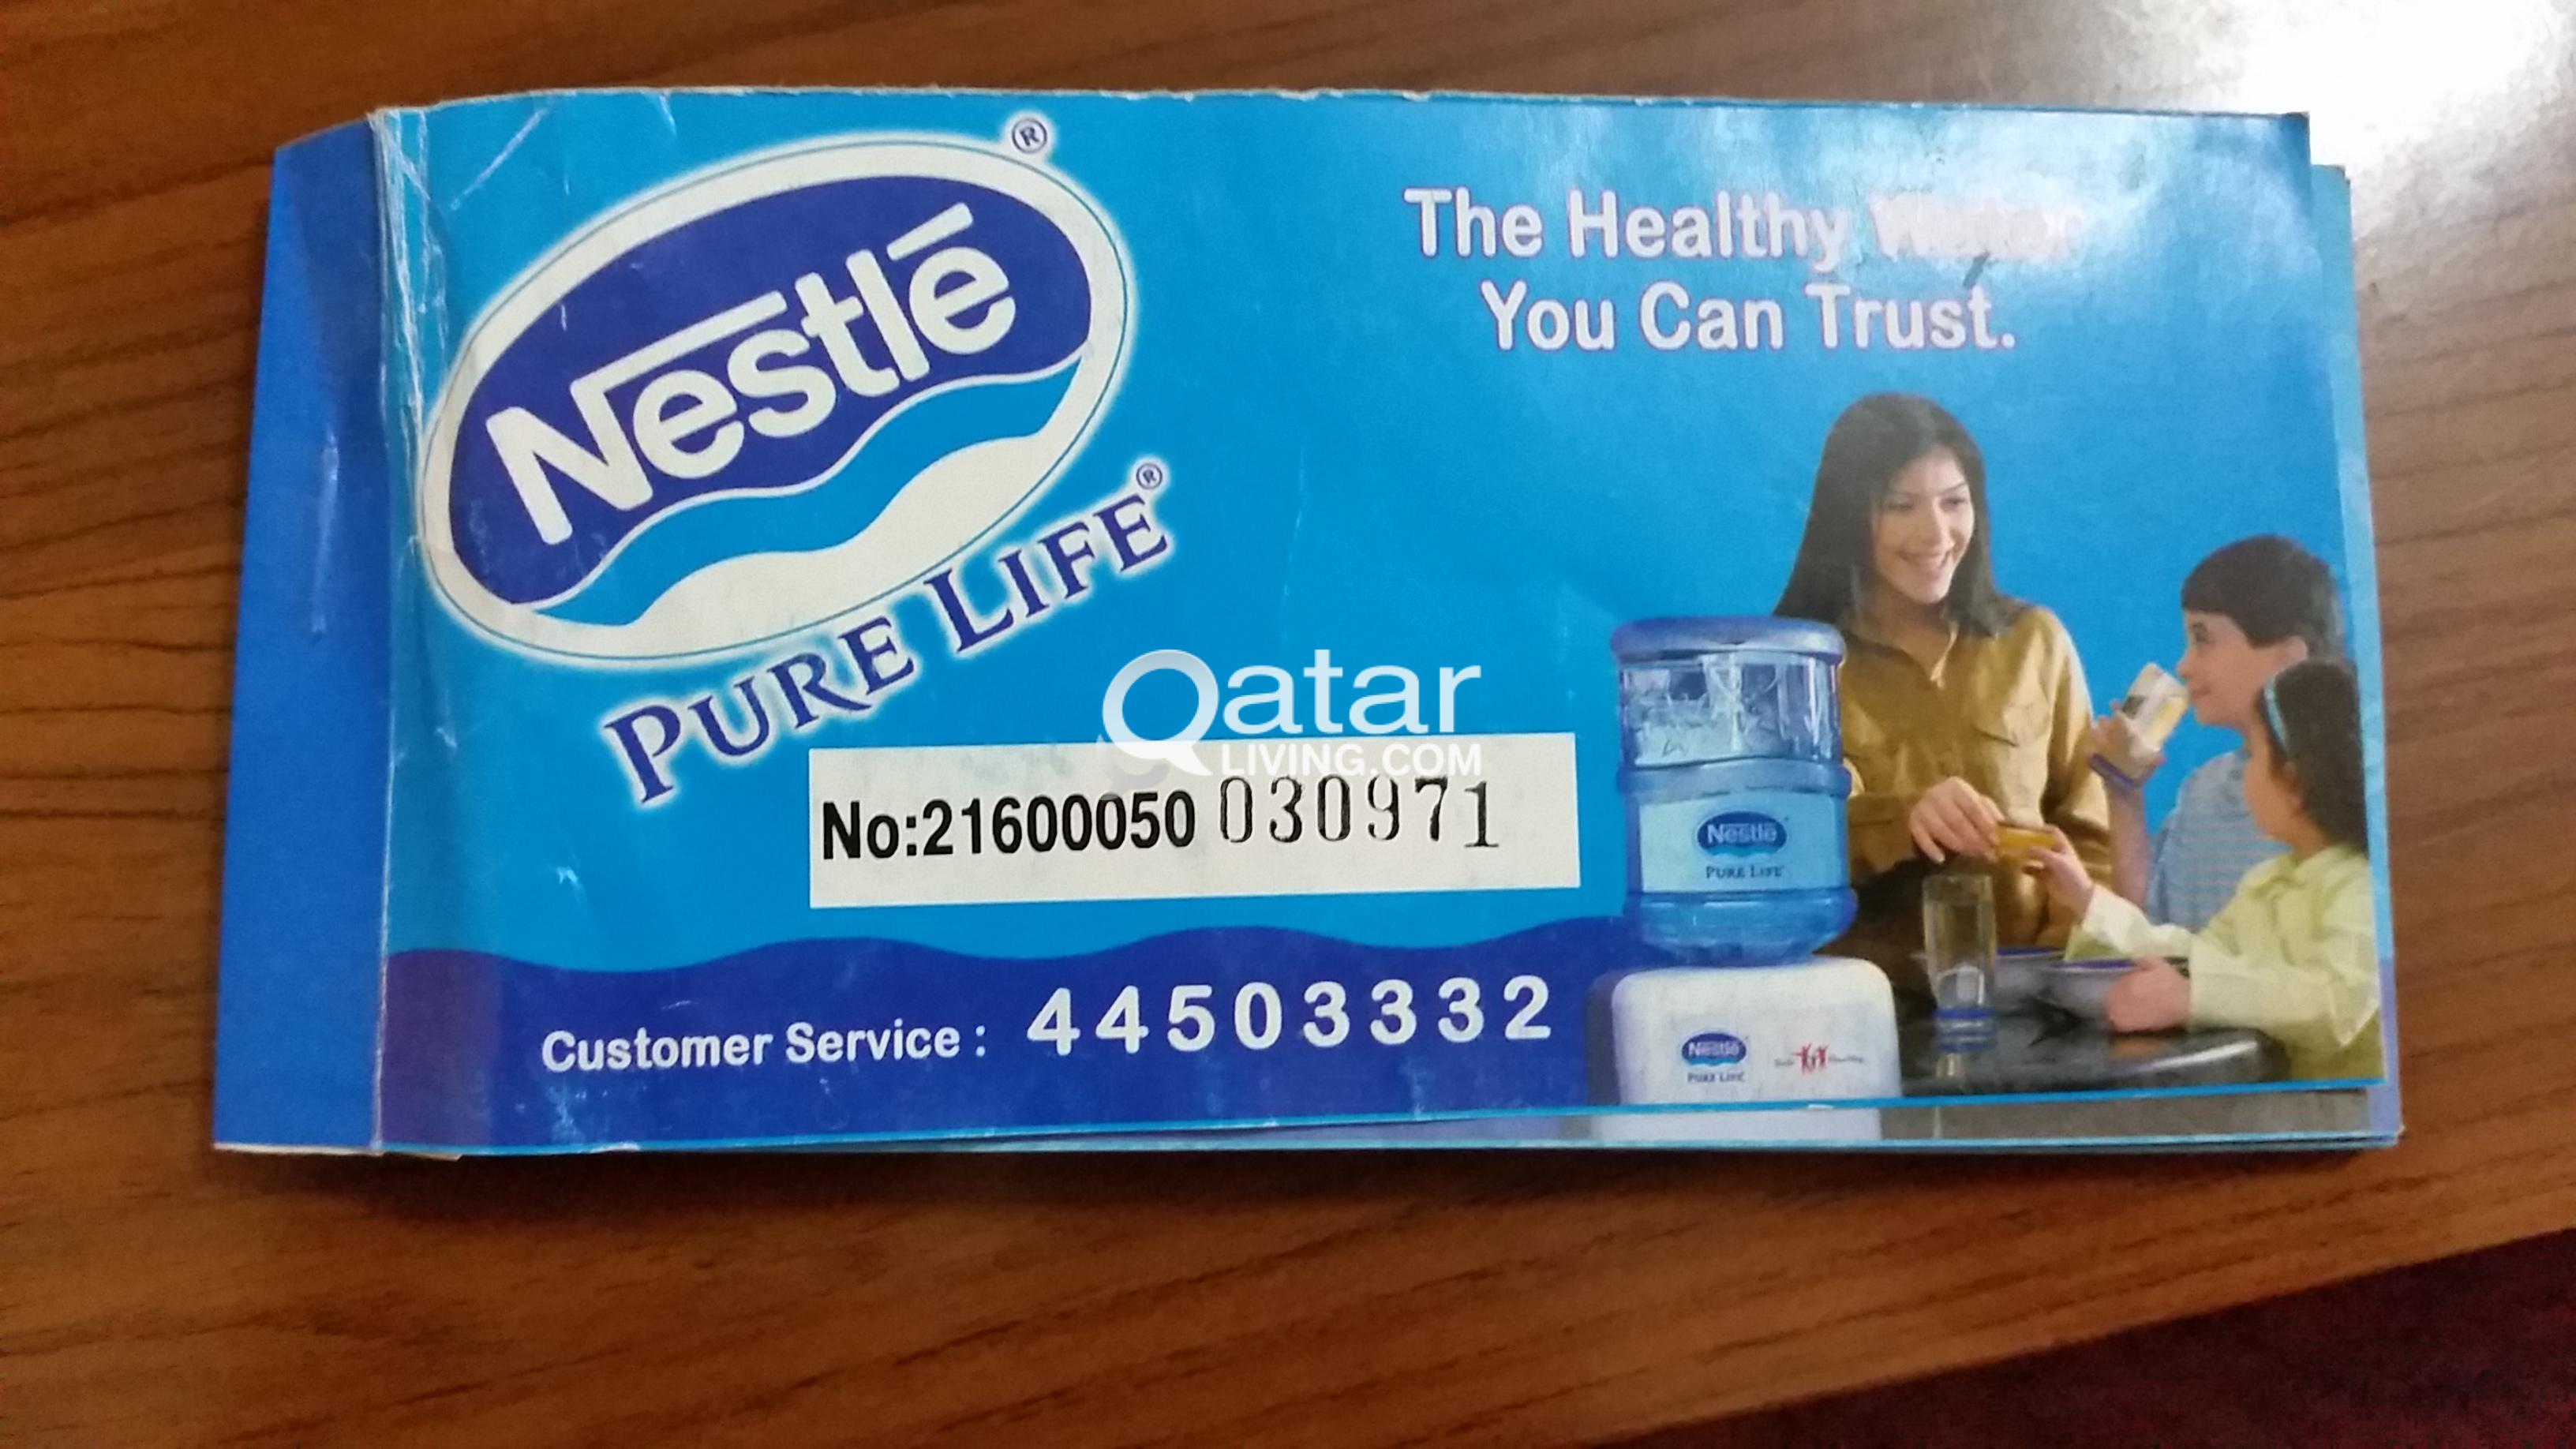 Nestle water coupons | Qatar Living